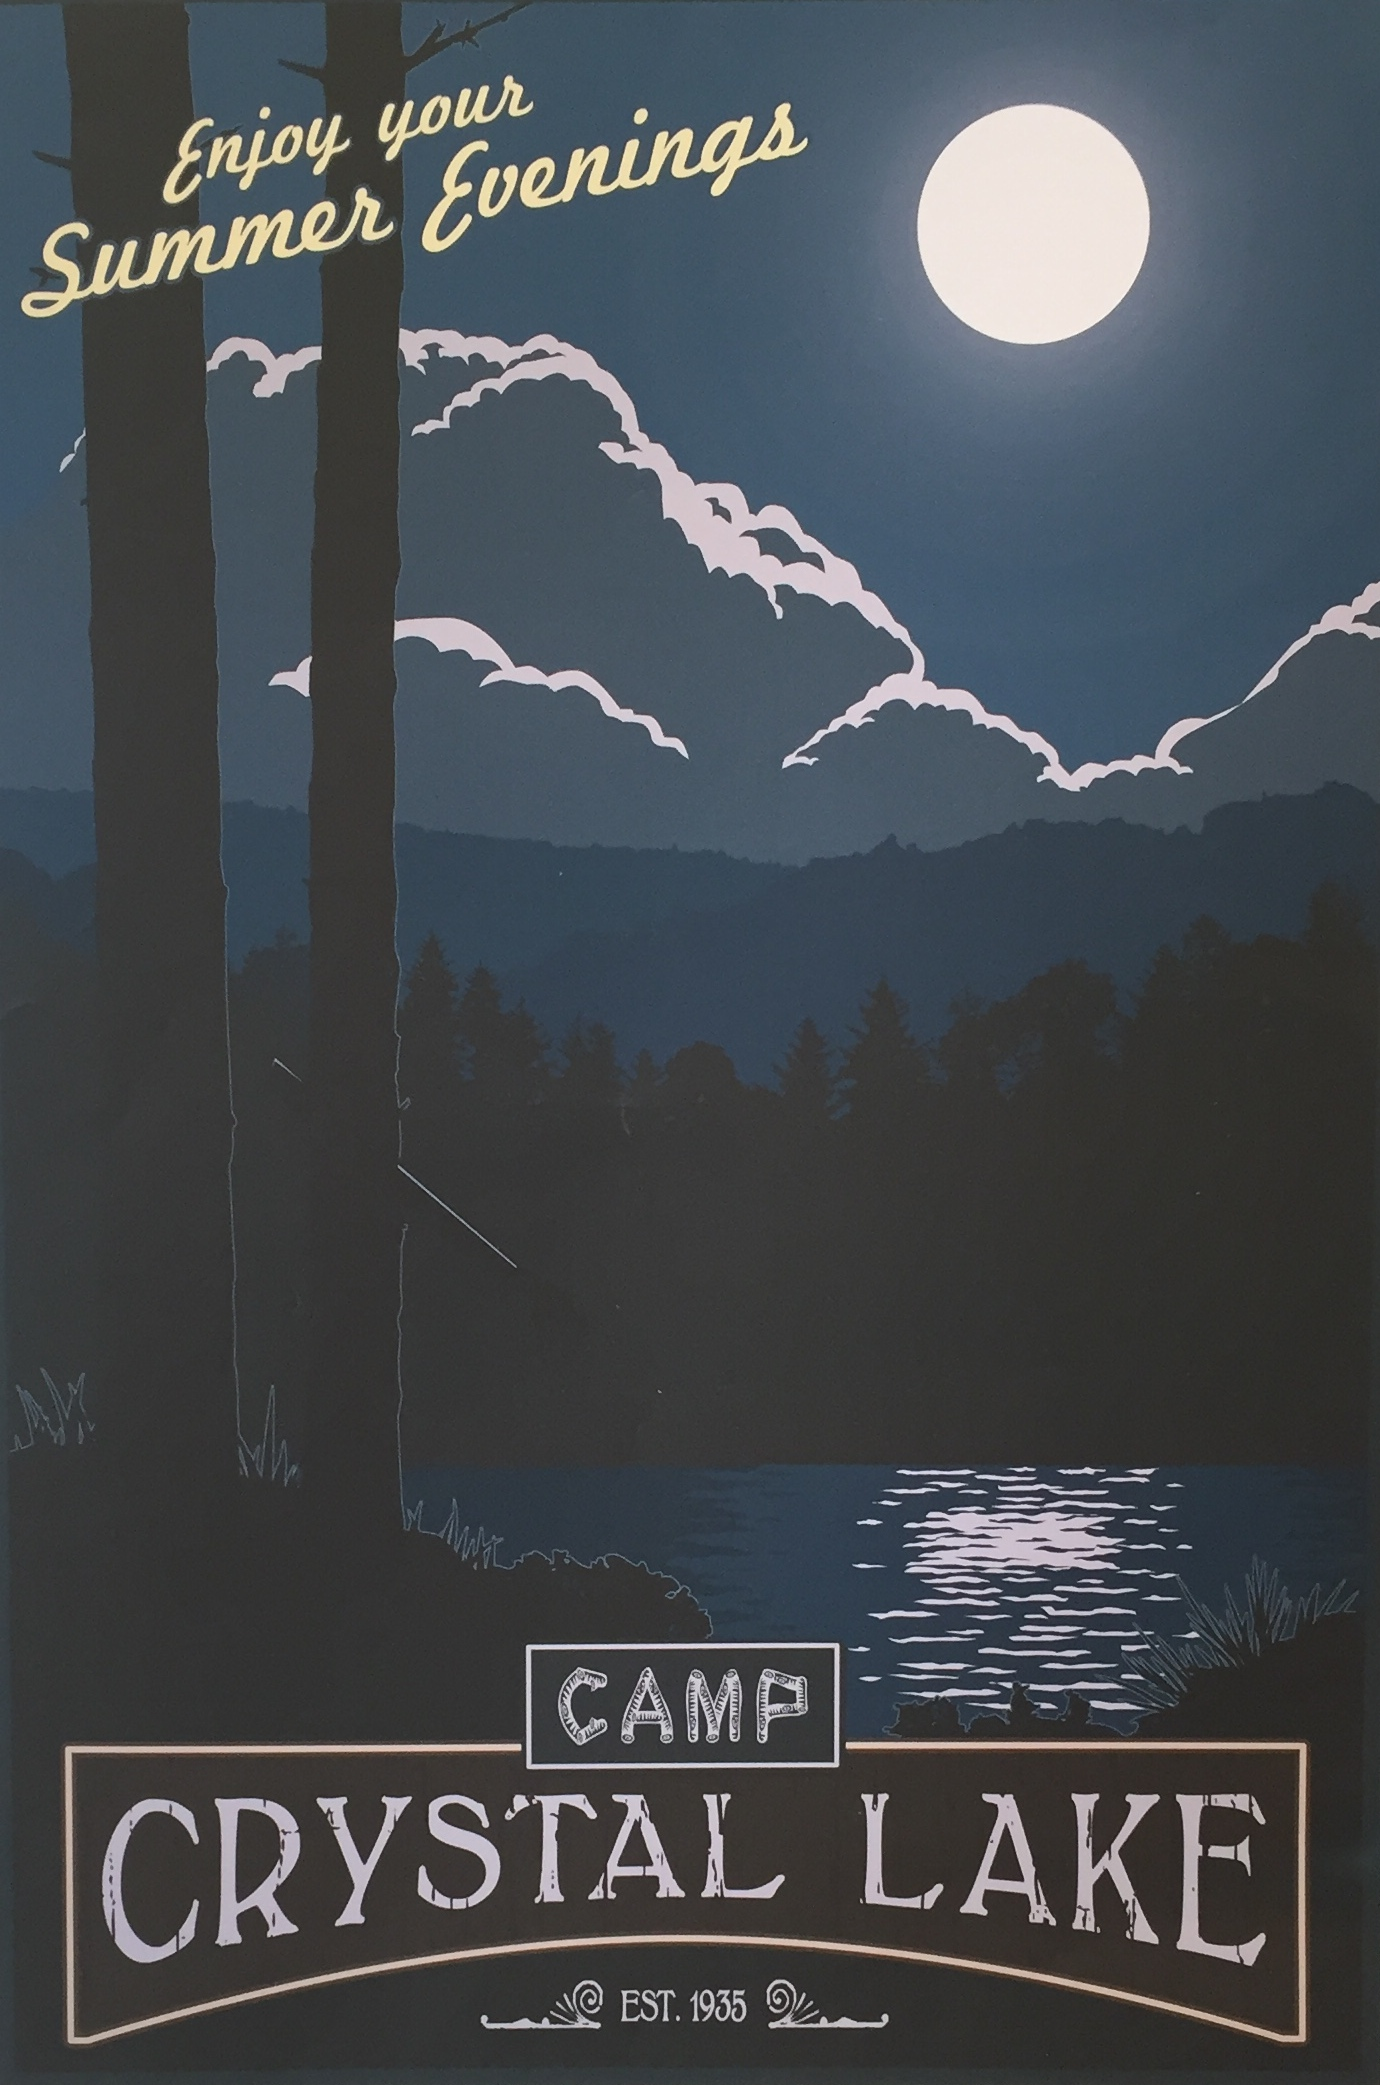 Camp Crystal Lake Poster By Steve Thomas Chairish